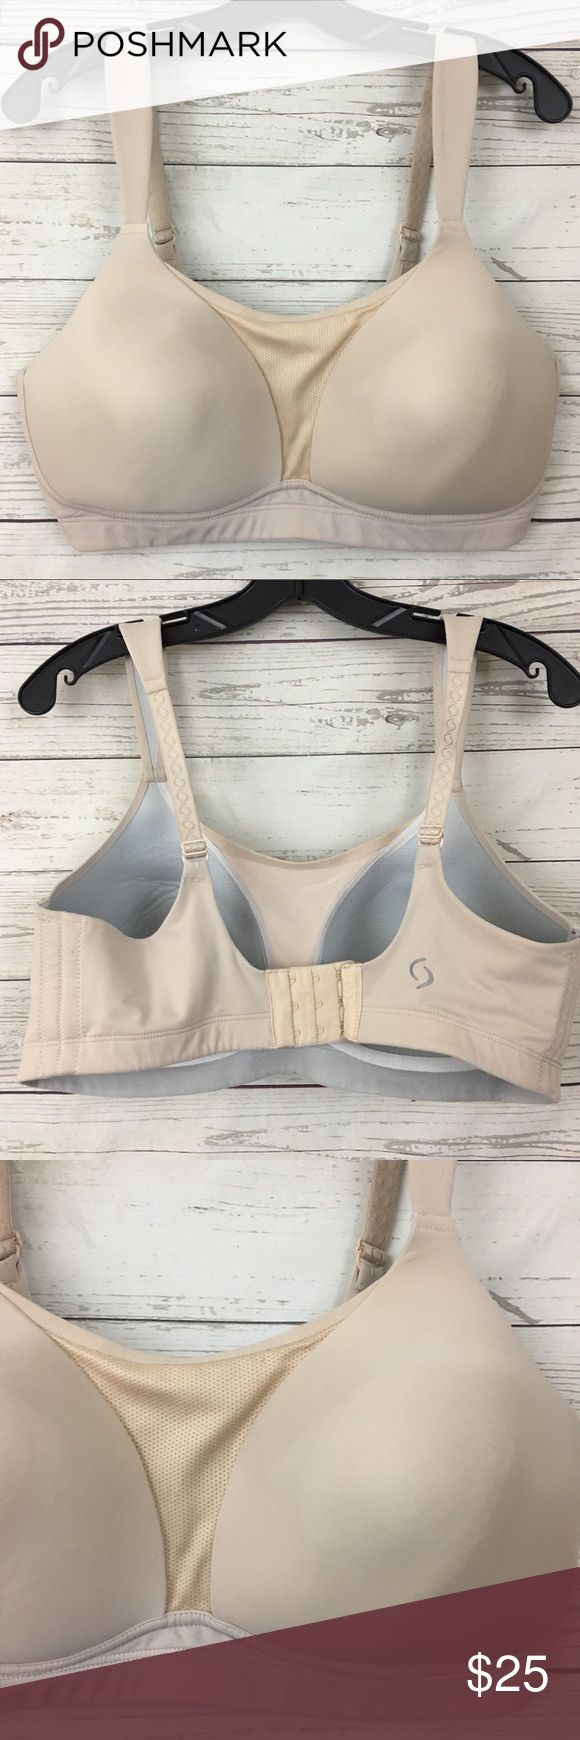 Moving Comfort luna nude sports bra Great condition no flaws Moving Comfort Intimates & Sleepwear Bras